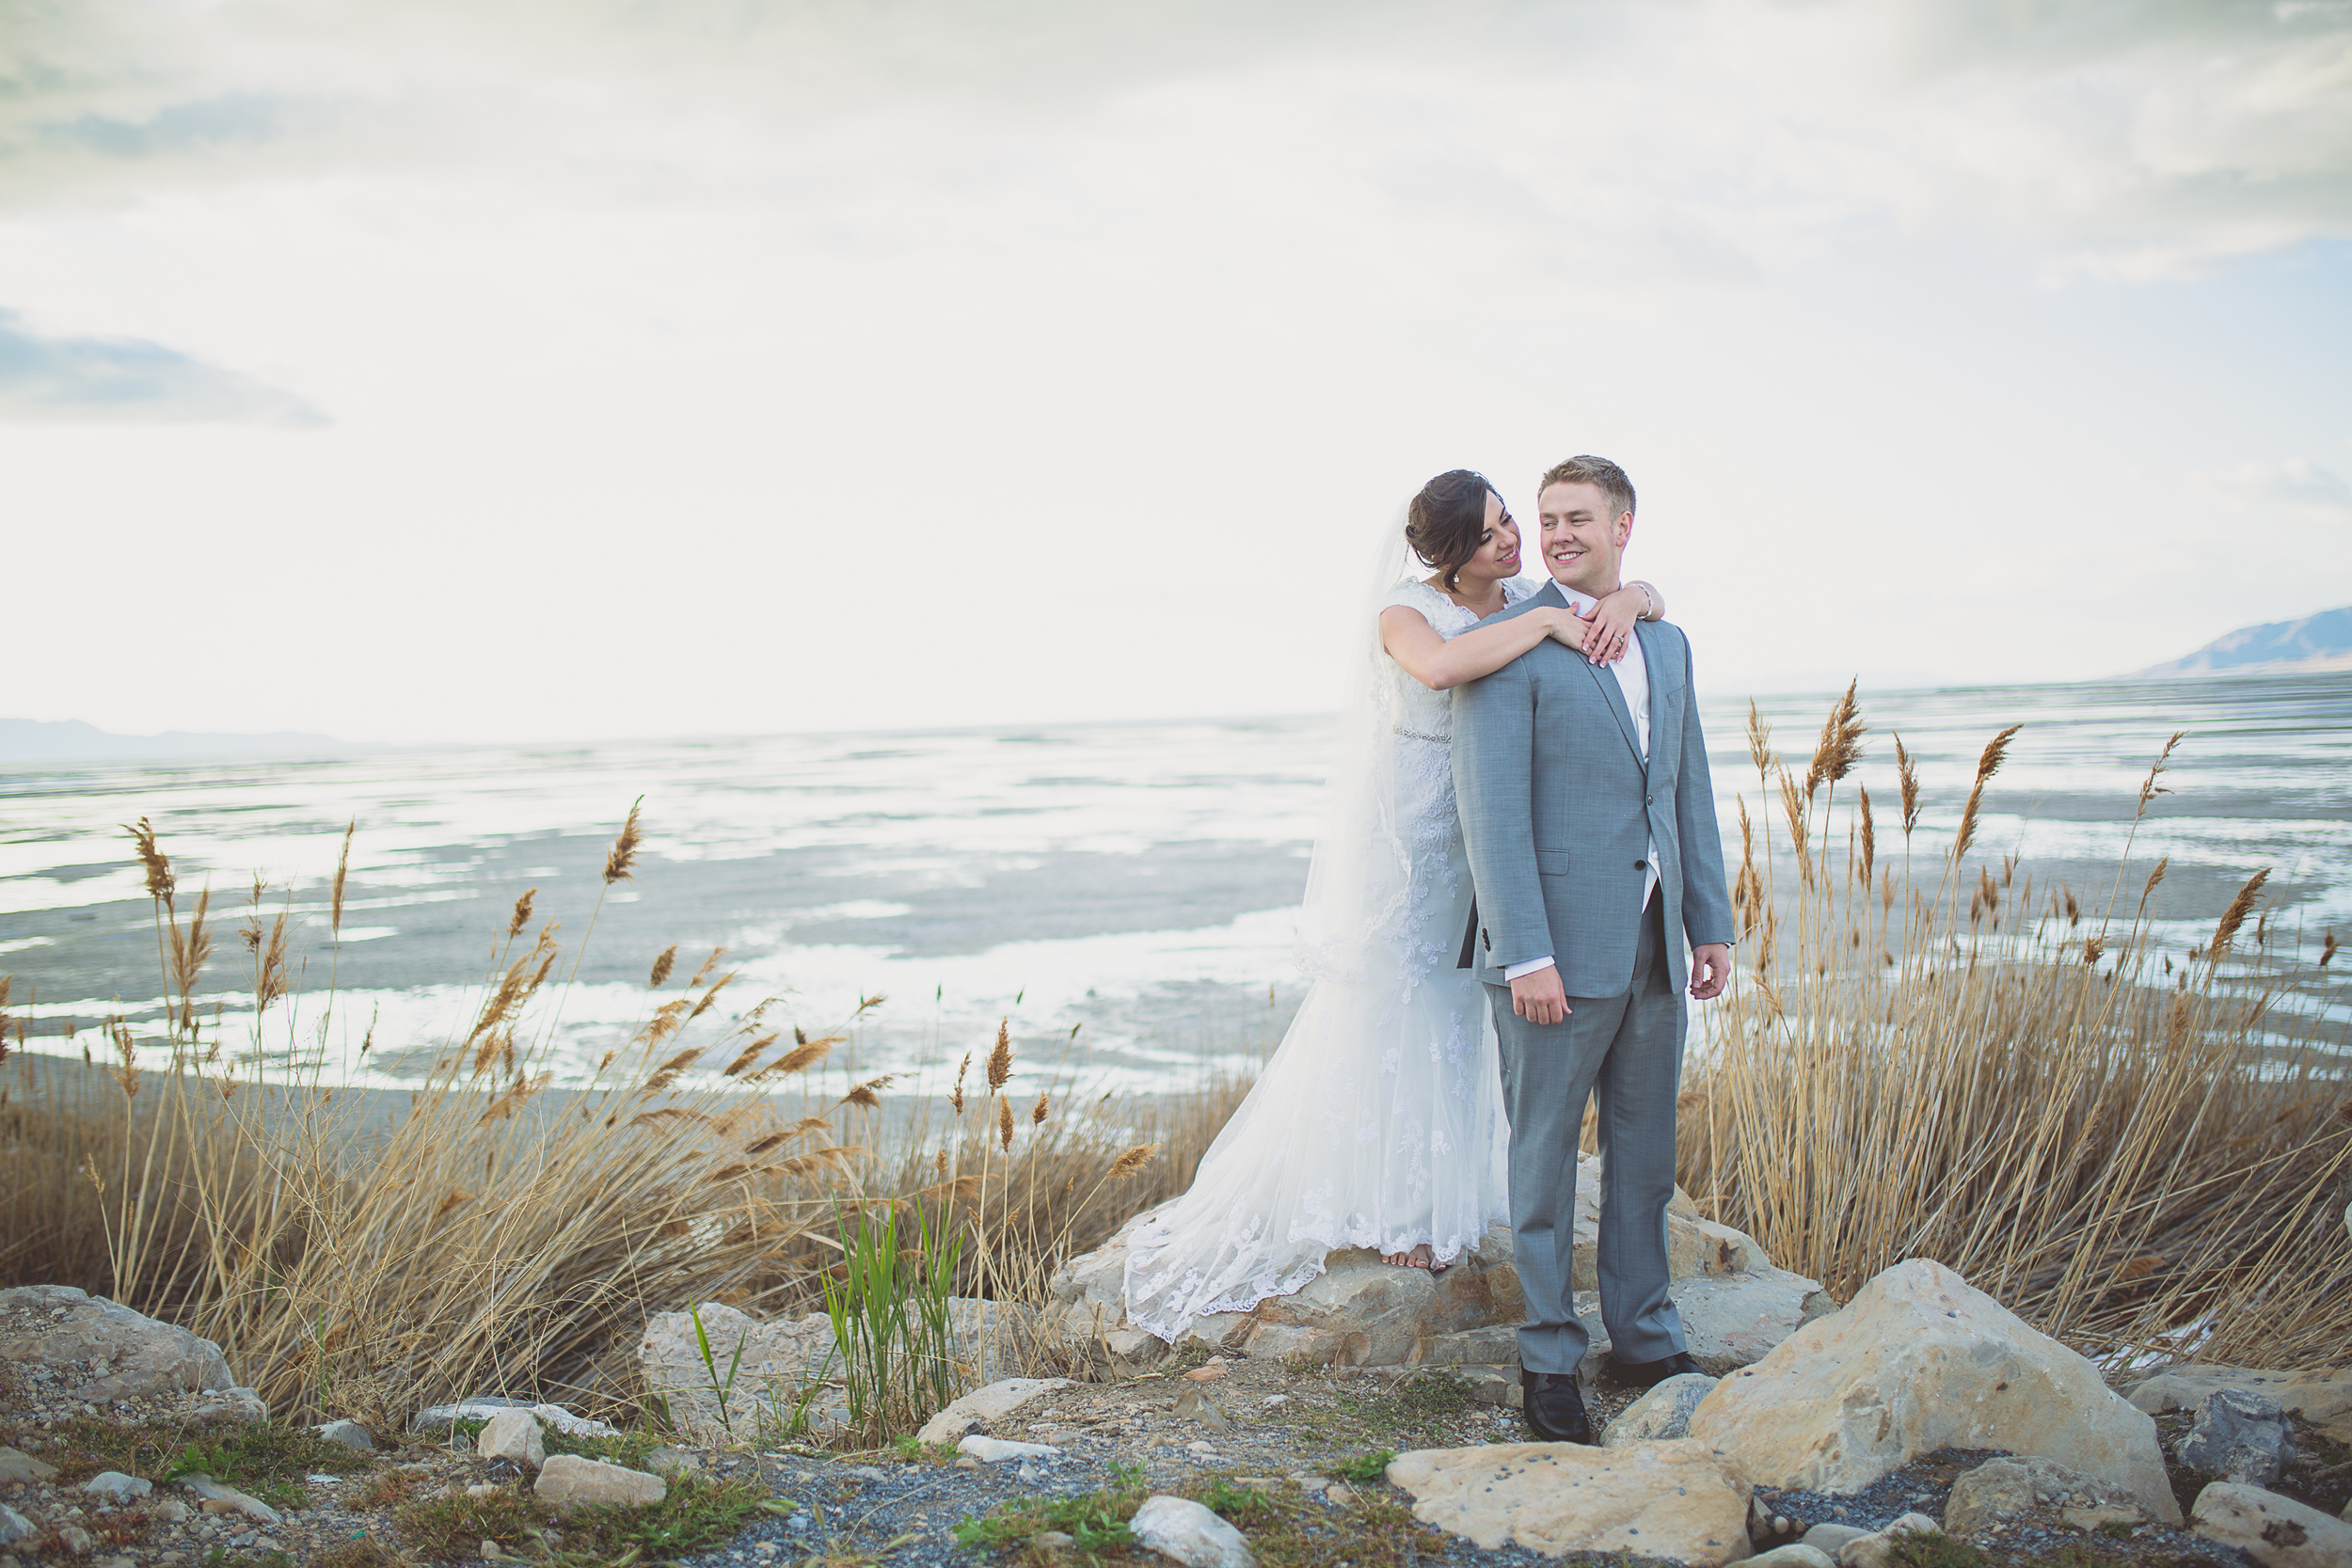 Tyler Shearer Photography Loren & Jovanne Proof Edits Wedding-1092